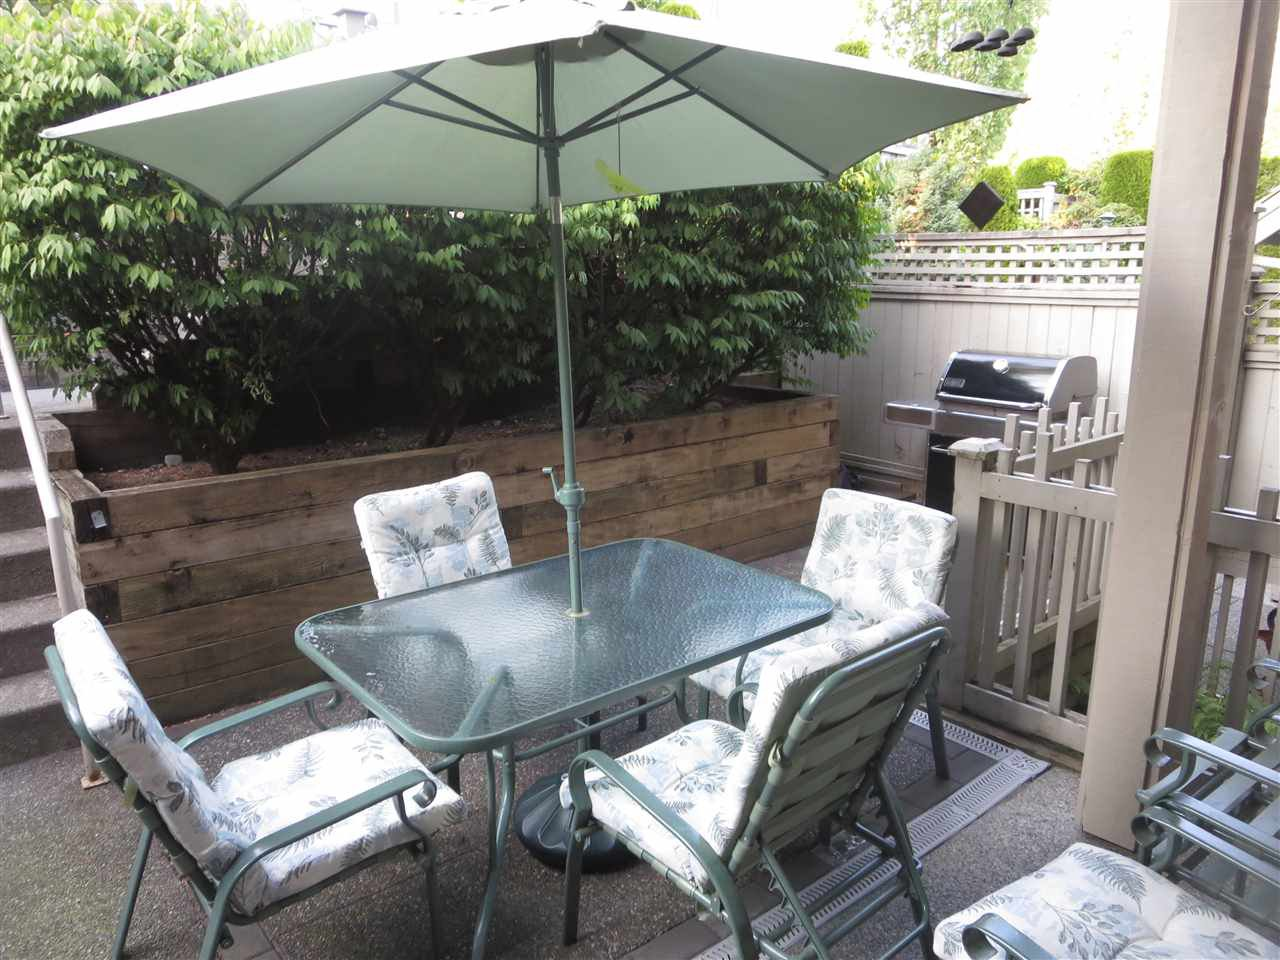 Photo 12: Photos: 2926 PANORAMA Drive in Coquitlam: Westwood Plateau Townhouse for sale : MLS®# R2293331